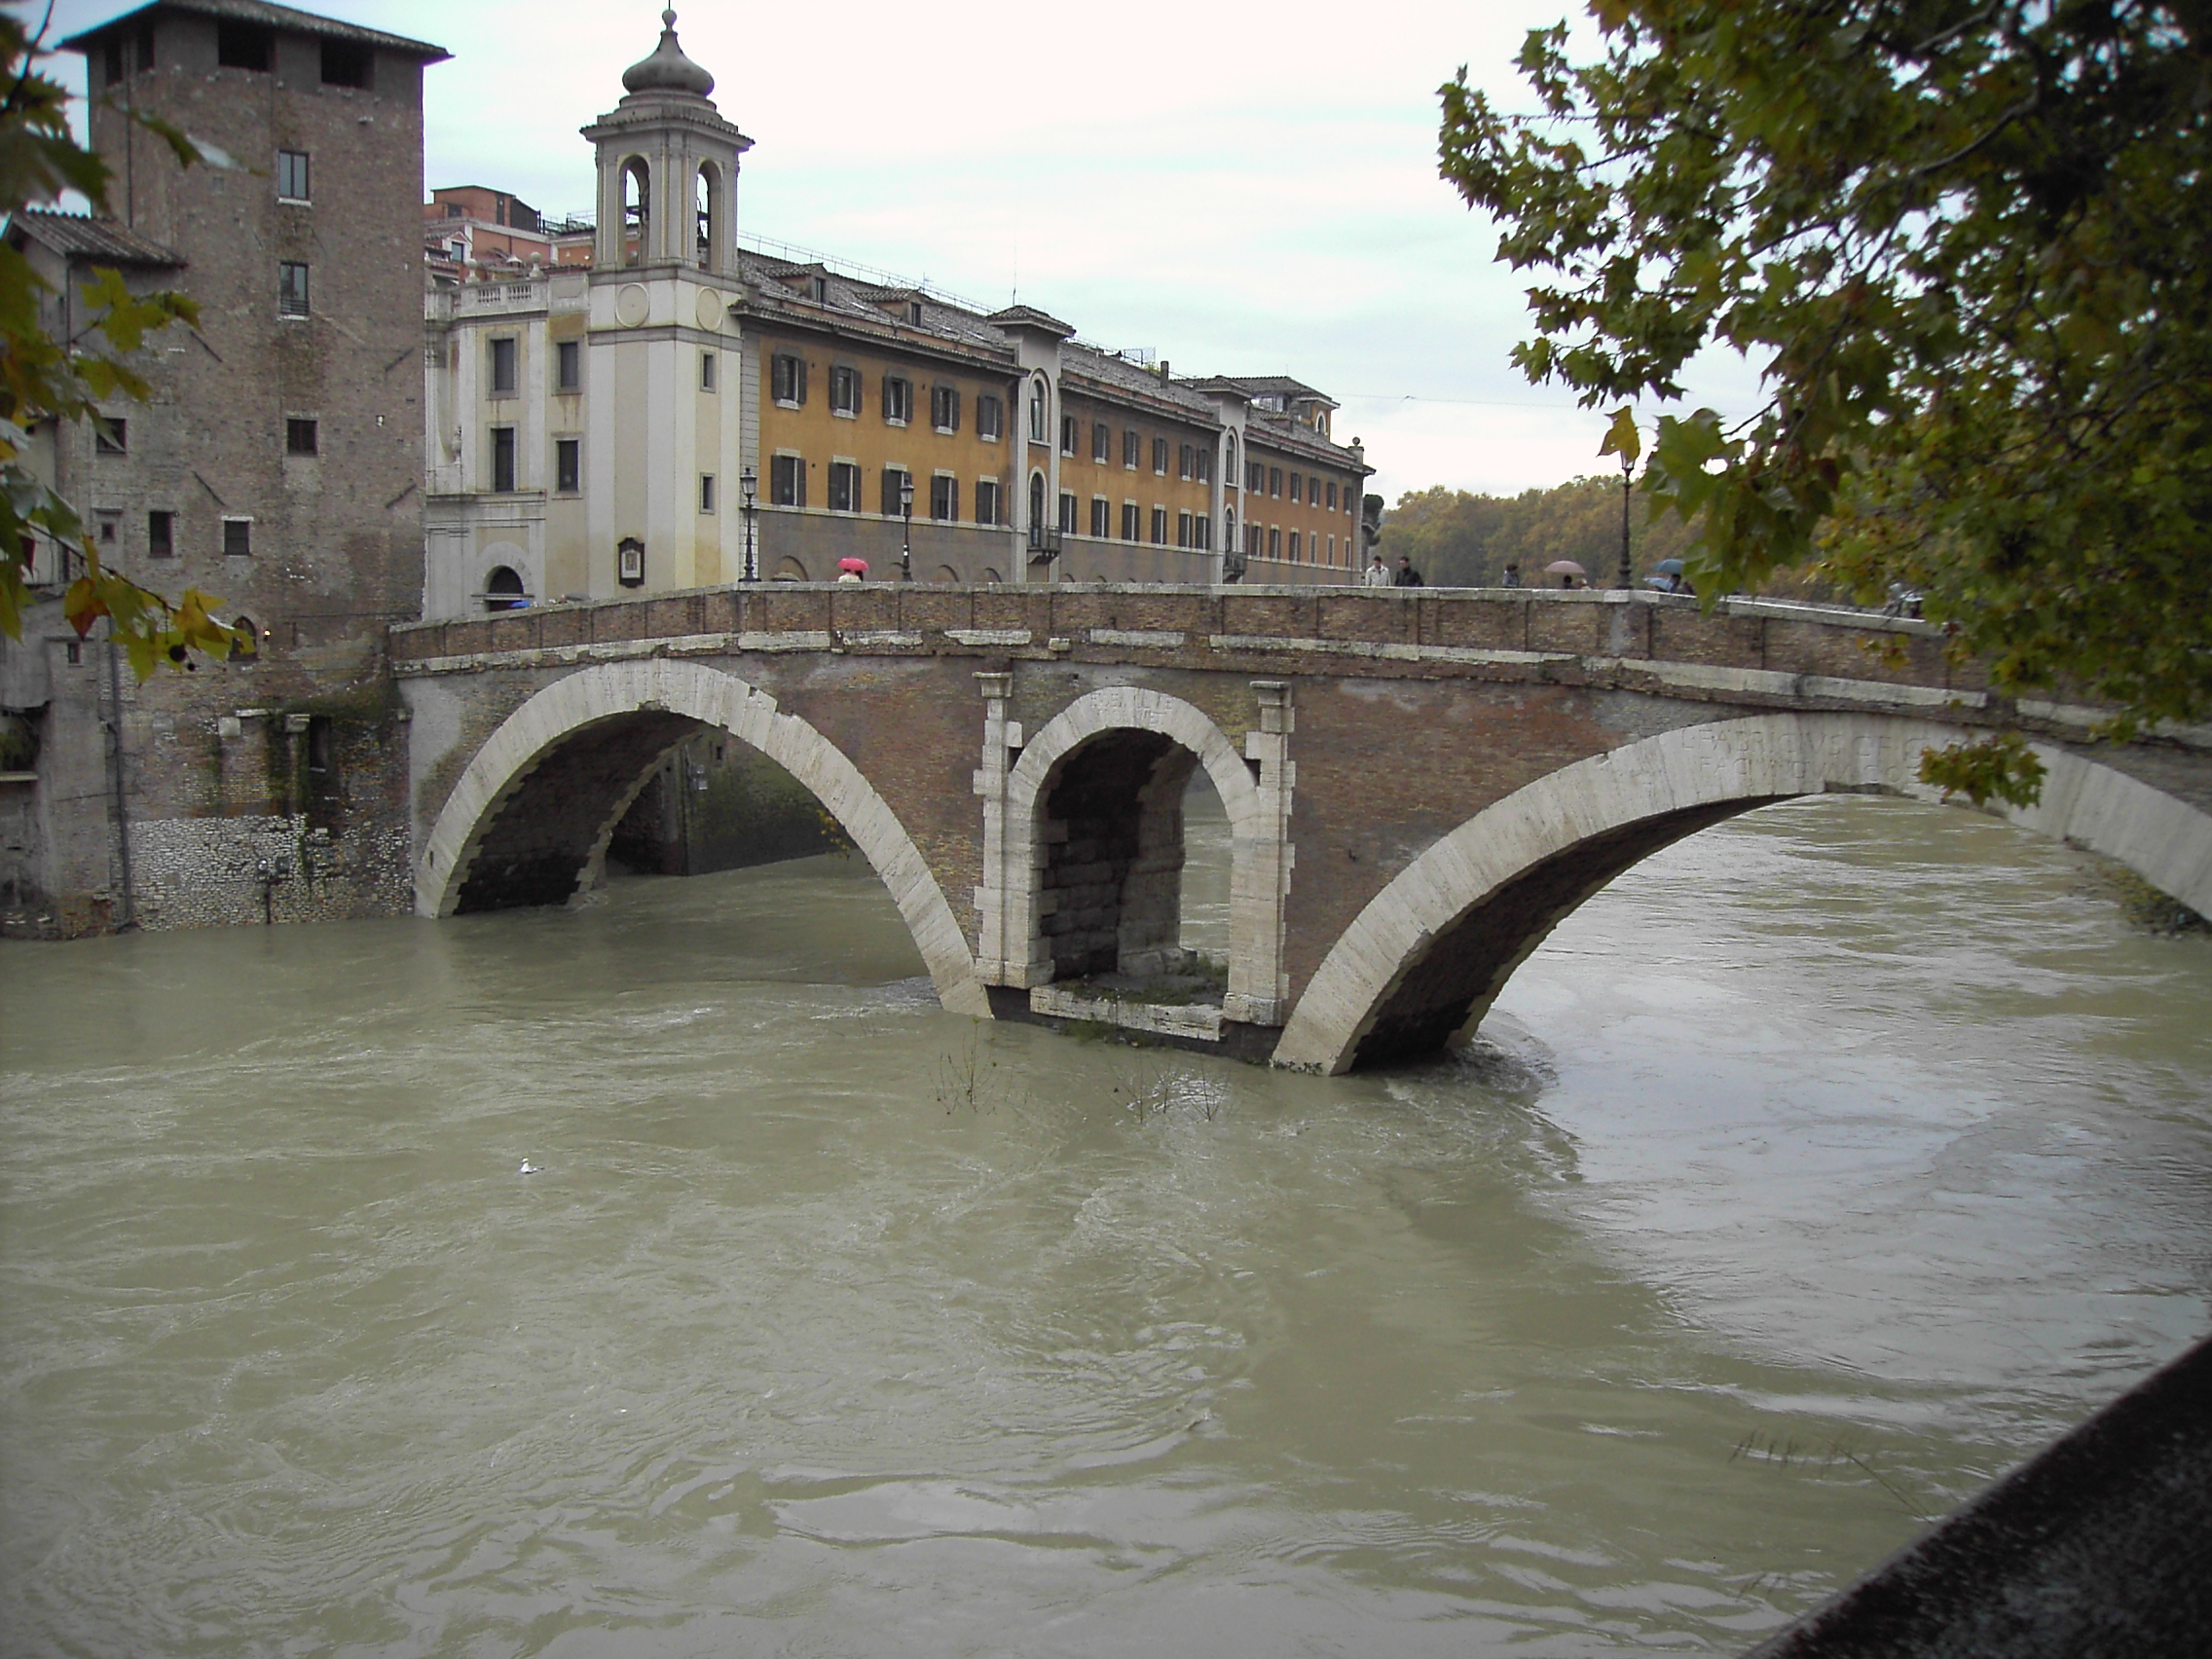 Fabricius's bridge from the end of the first century A.D. connecting Rome to Tiber Island